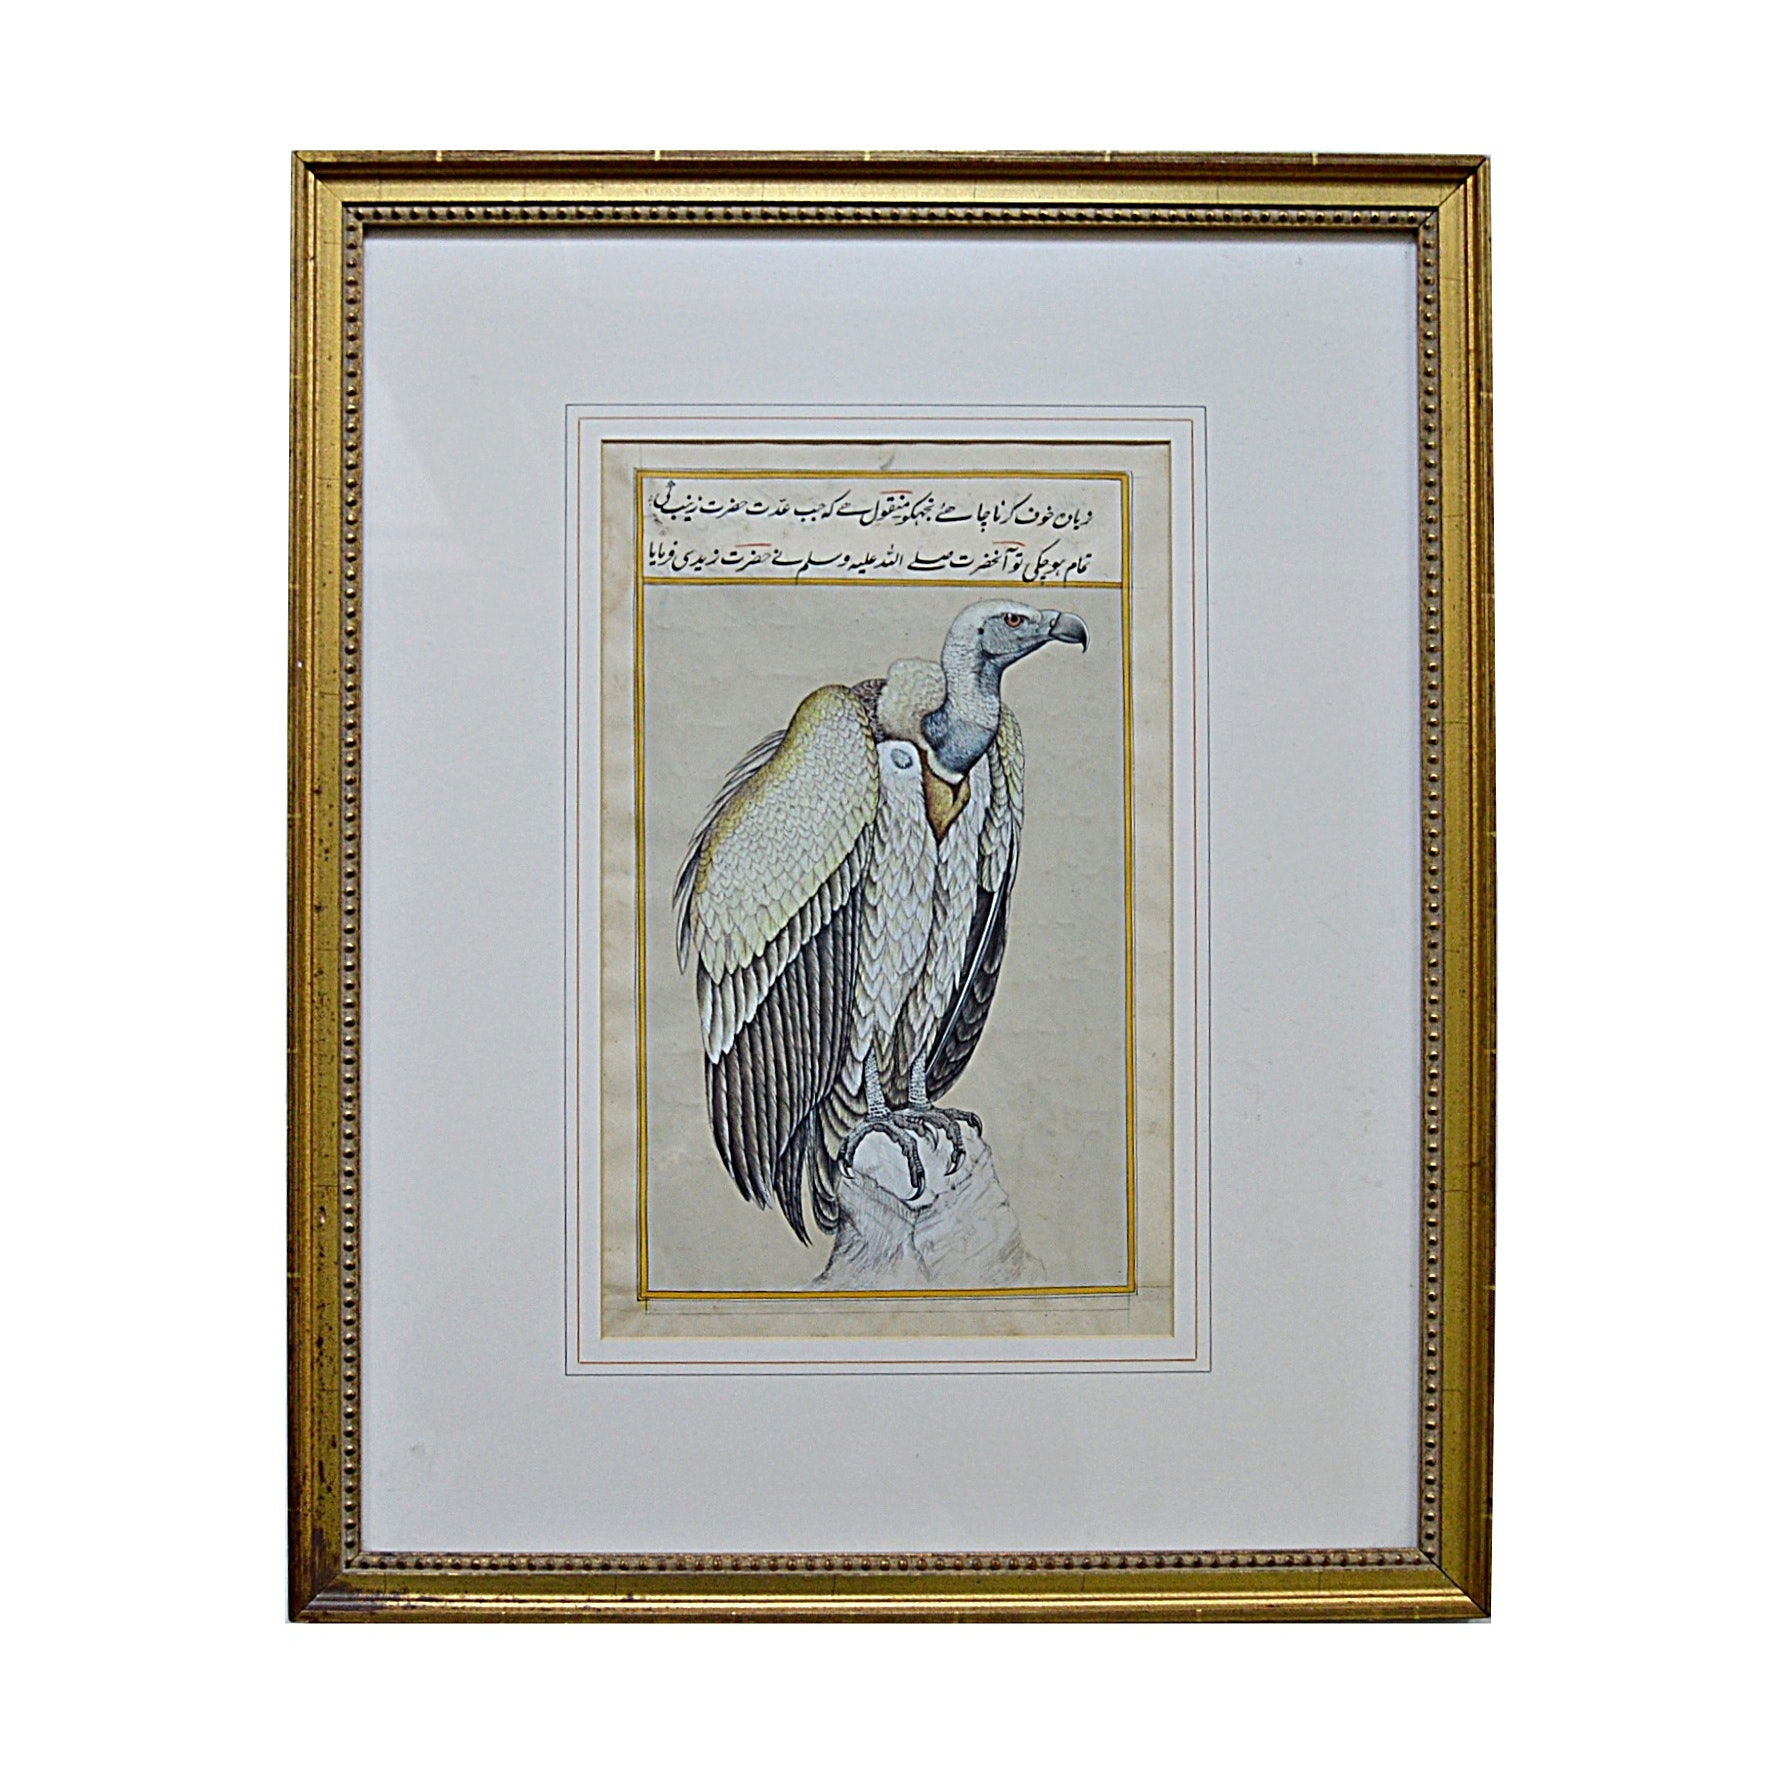 Late 19th- to Early 20th-Century Persian Gouache on Vellum of a Vulture